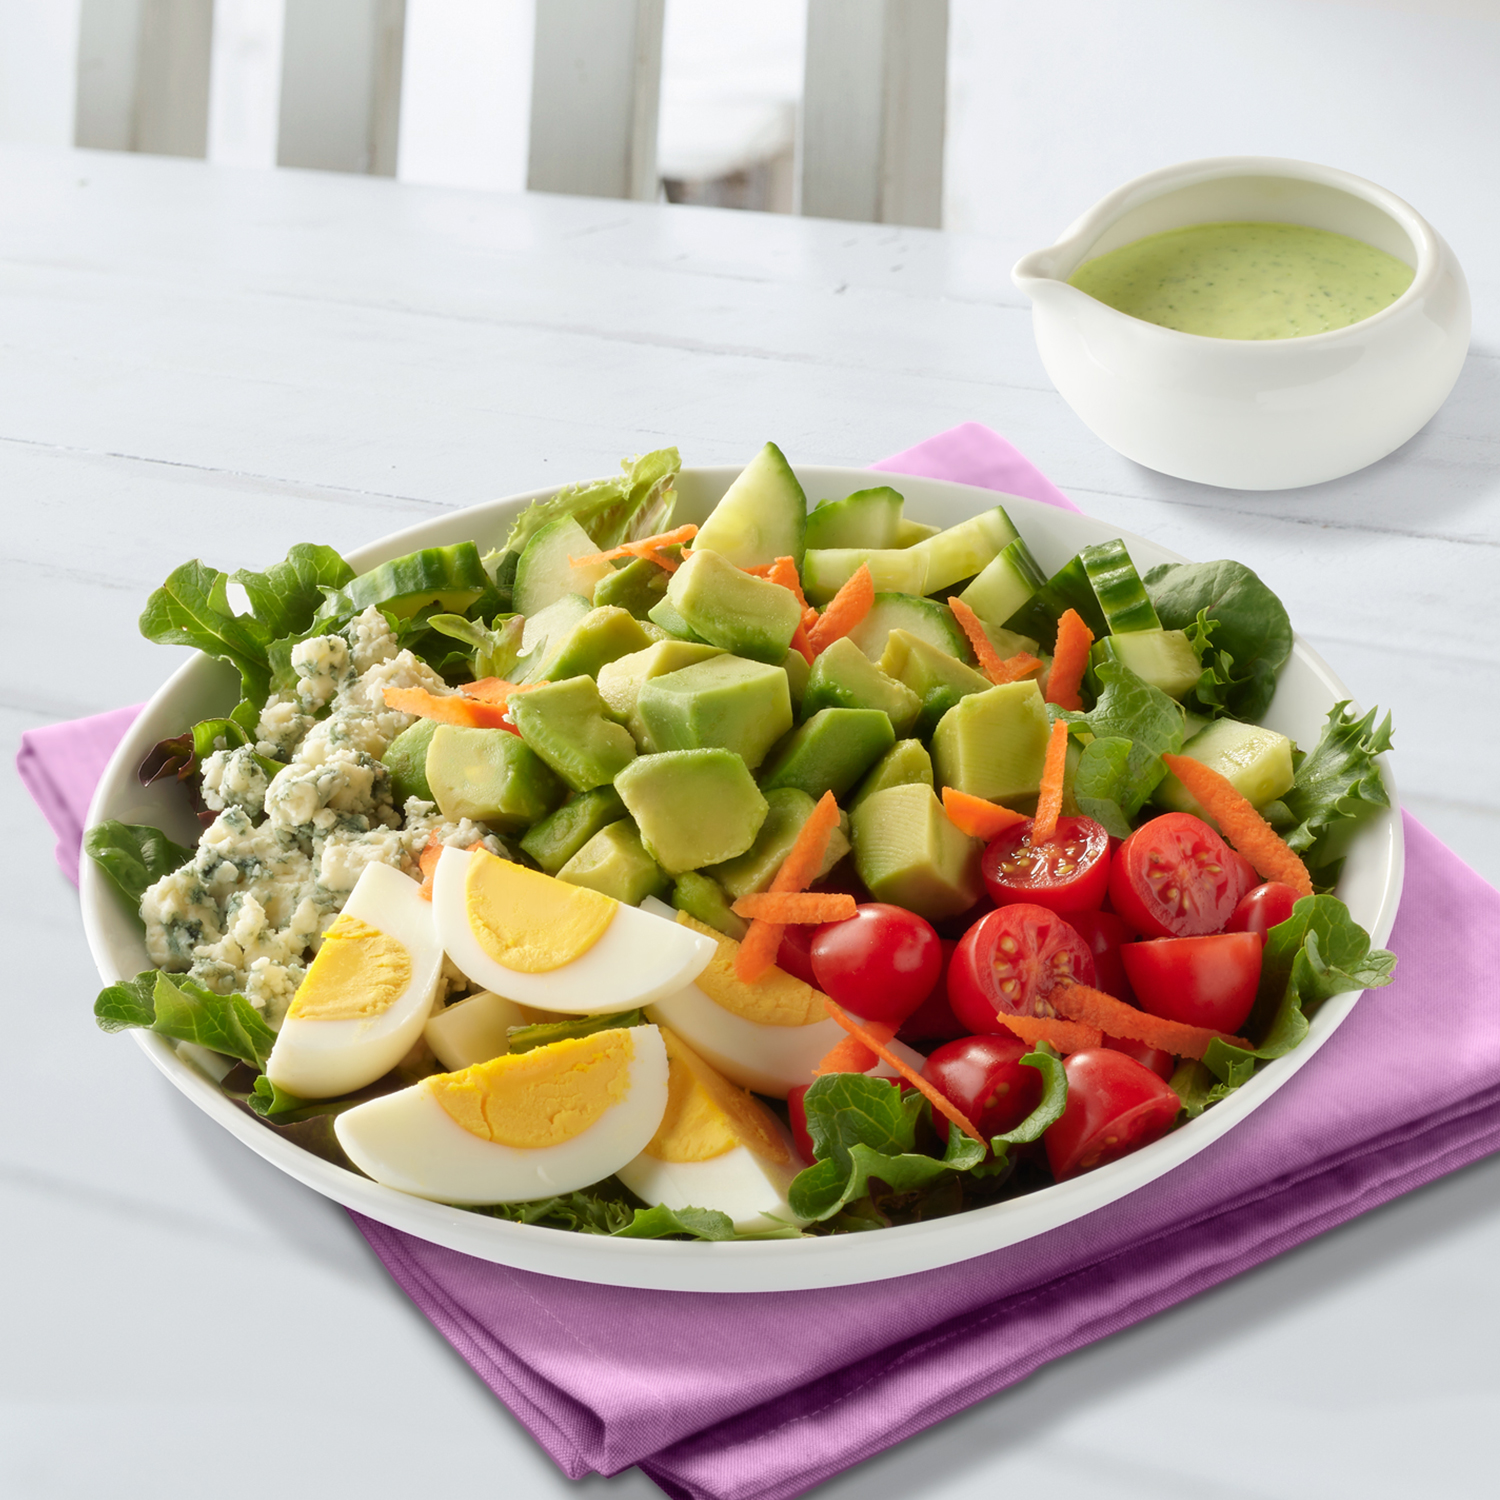 wholly_diced_cobb_salad_1500x1500